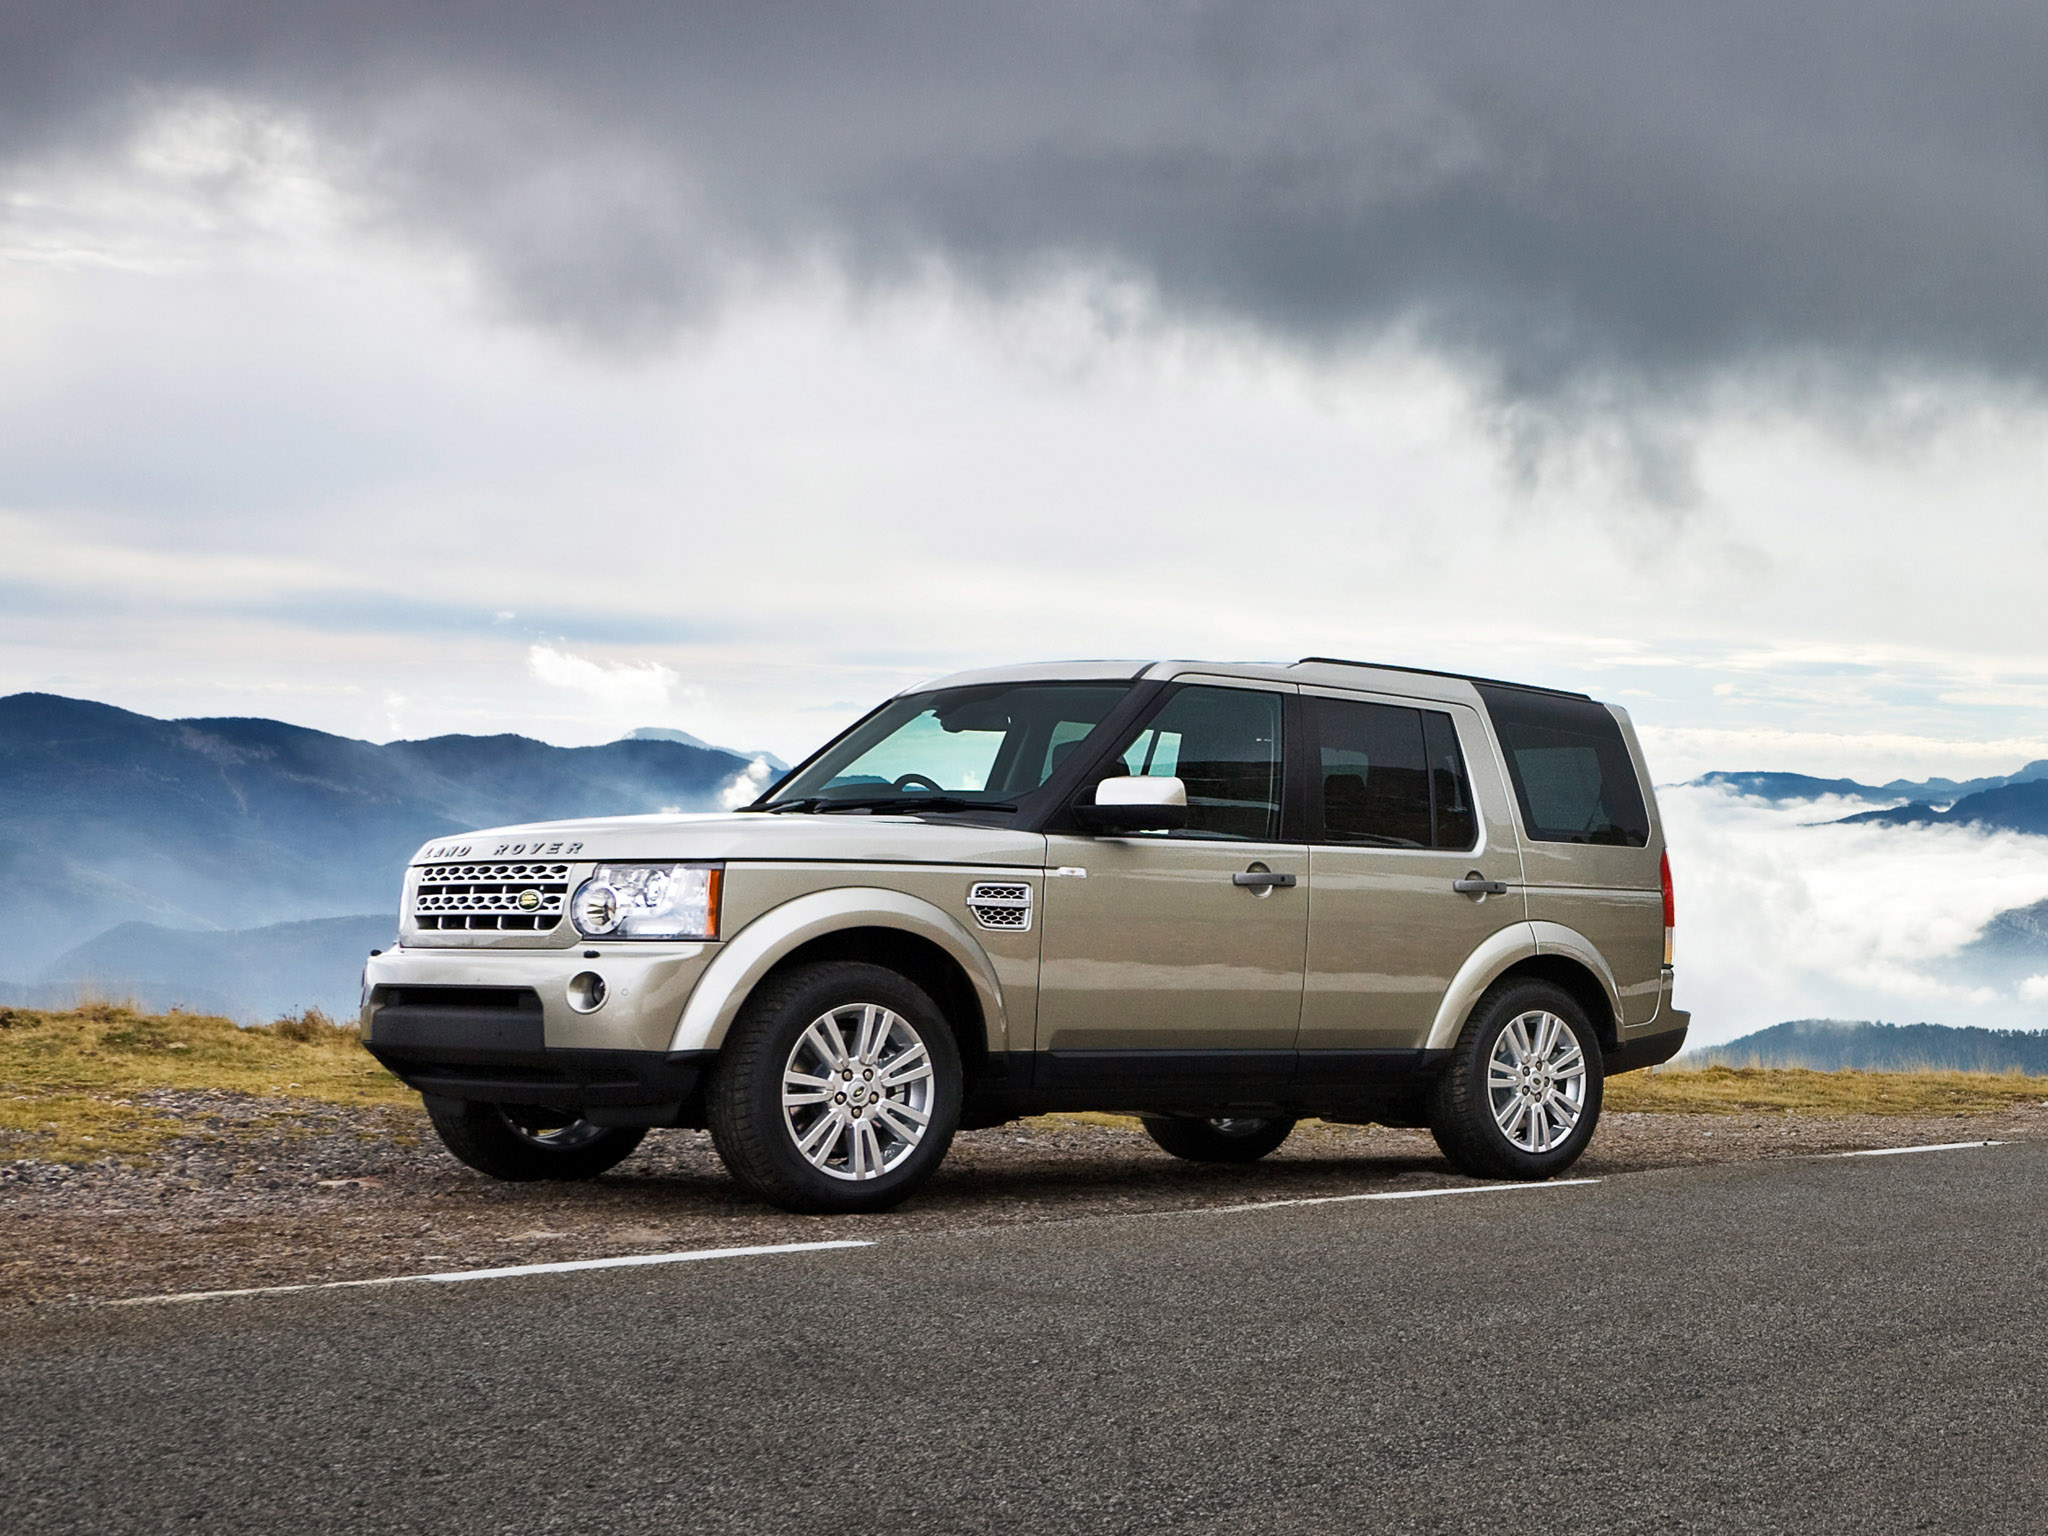 Land Rover Discovery 4 3 0 Tdv6 2009 Land Rover Discovery